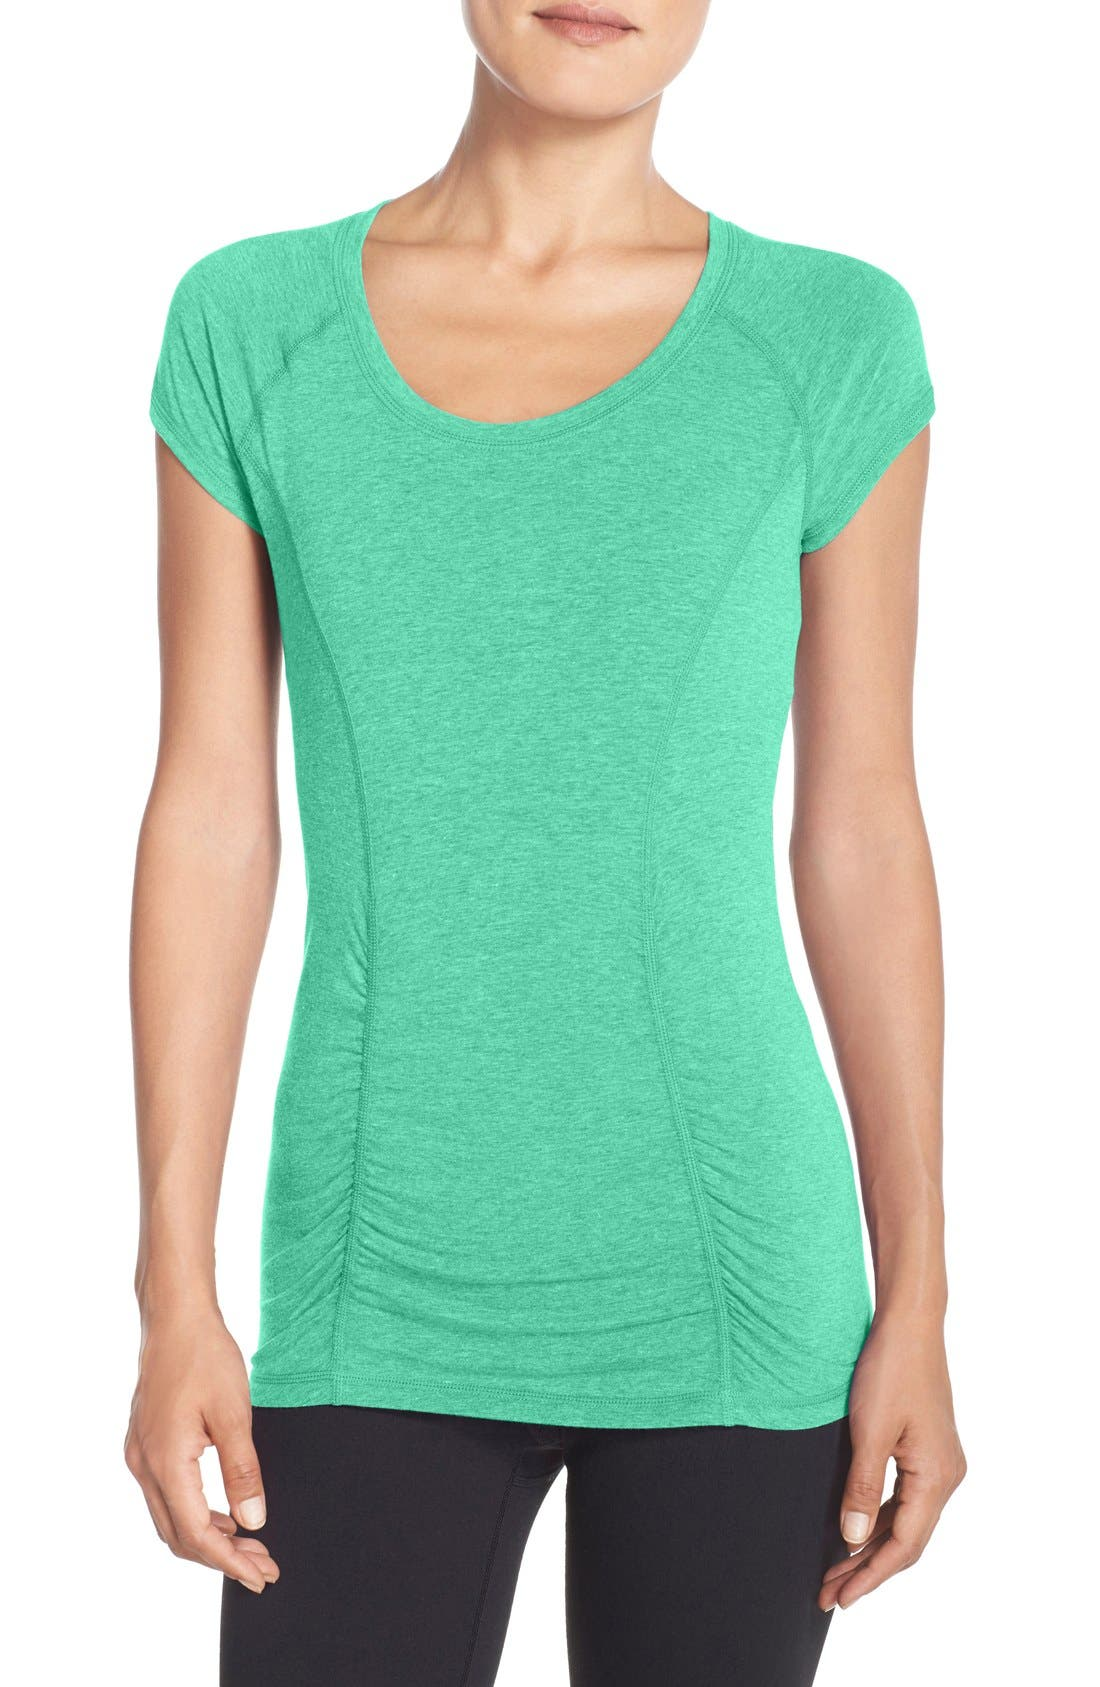 'Z 6' Ruched Tee,                             Main thumbnail 1, color,                             310